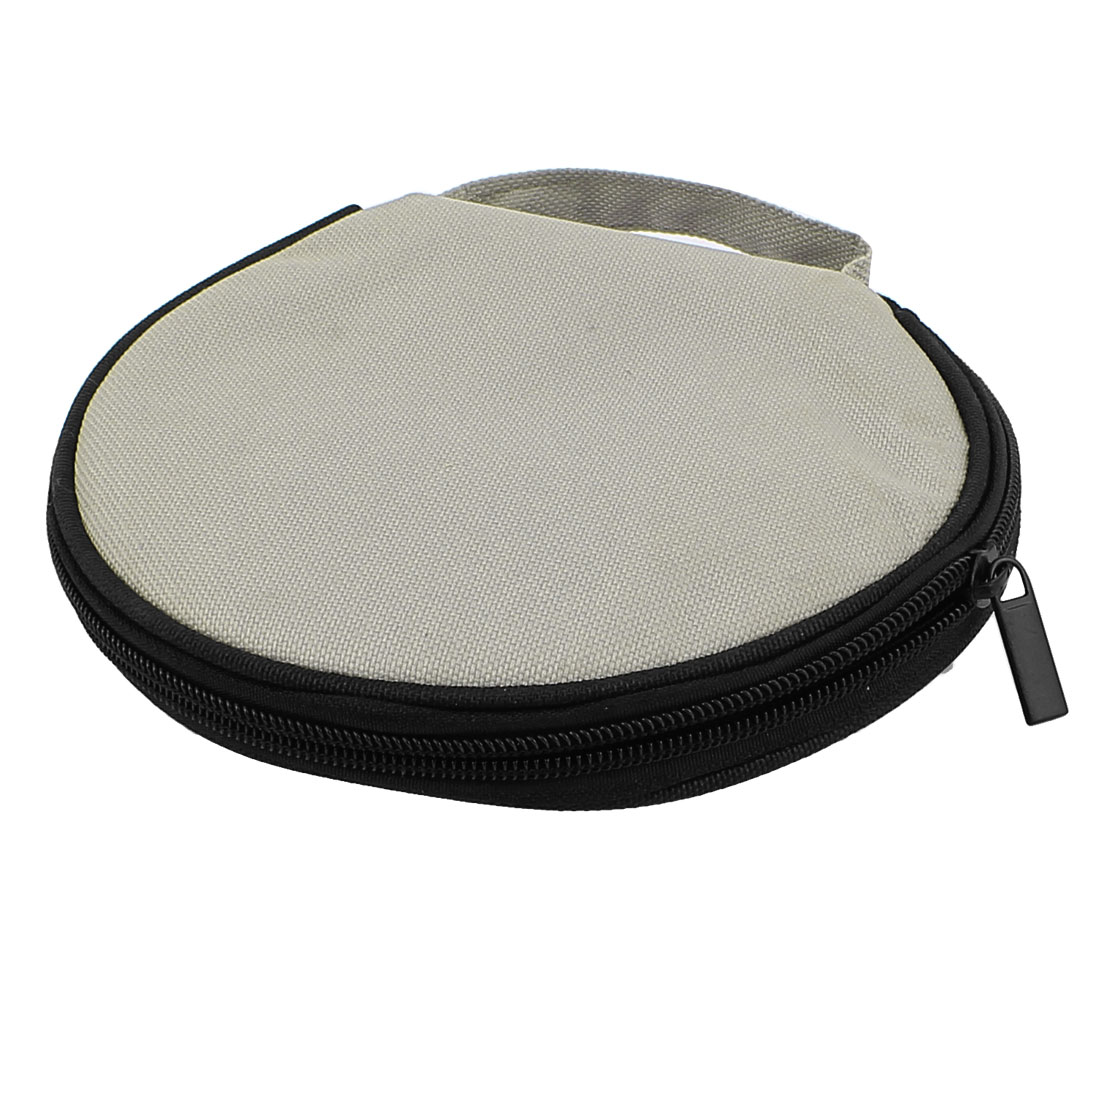 Zipper Closure Round CD Discs Holder Bag Storage Carry Case Cover Wallet Gray